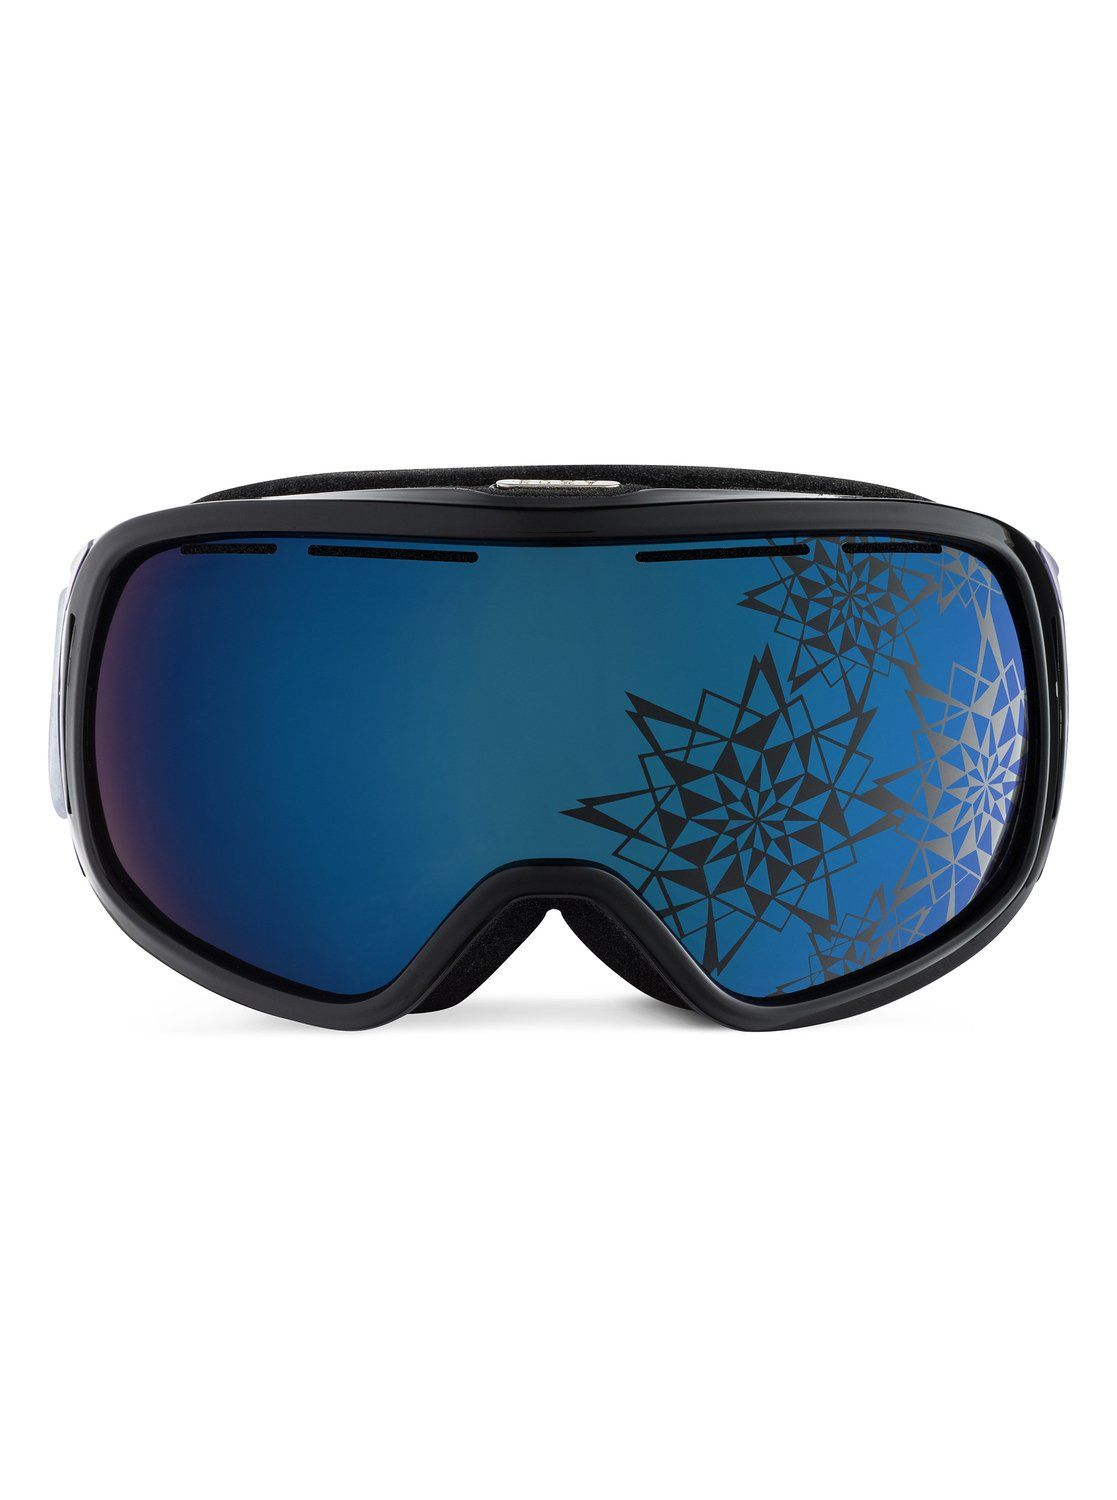 f627863c580 Rockferry Snowboard Googles 888701266723